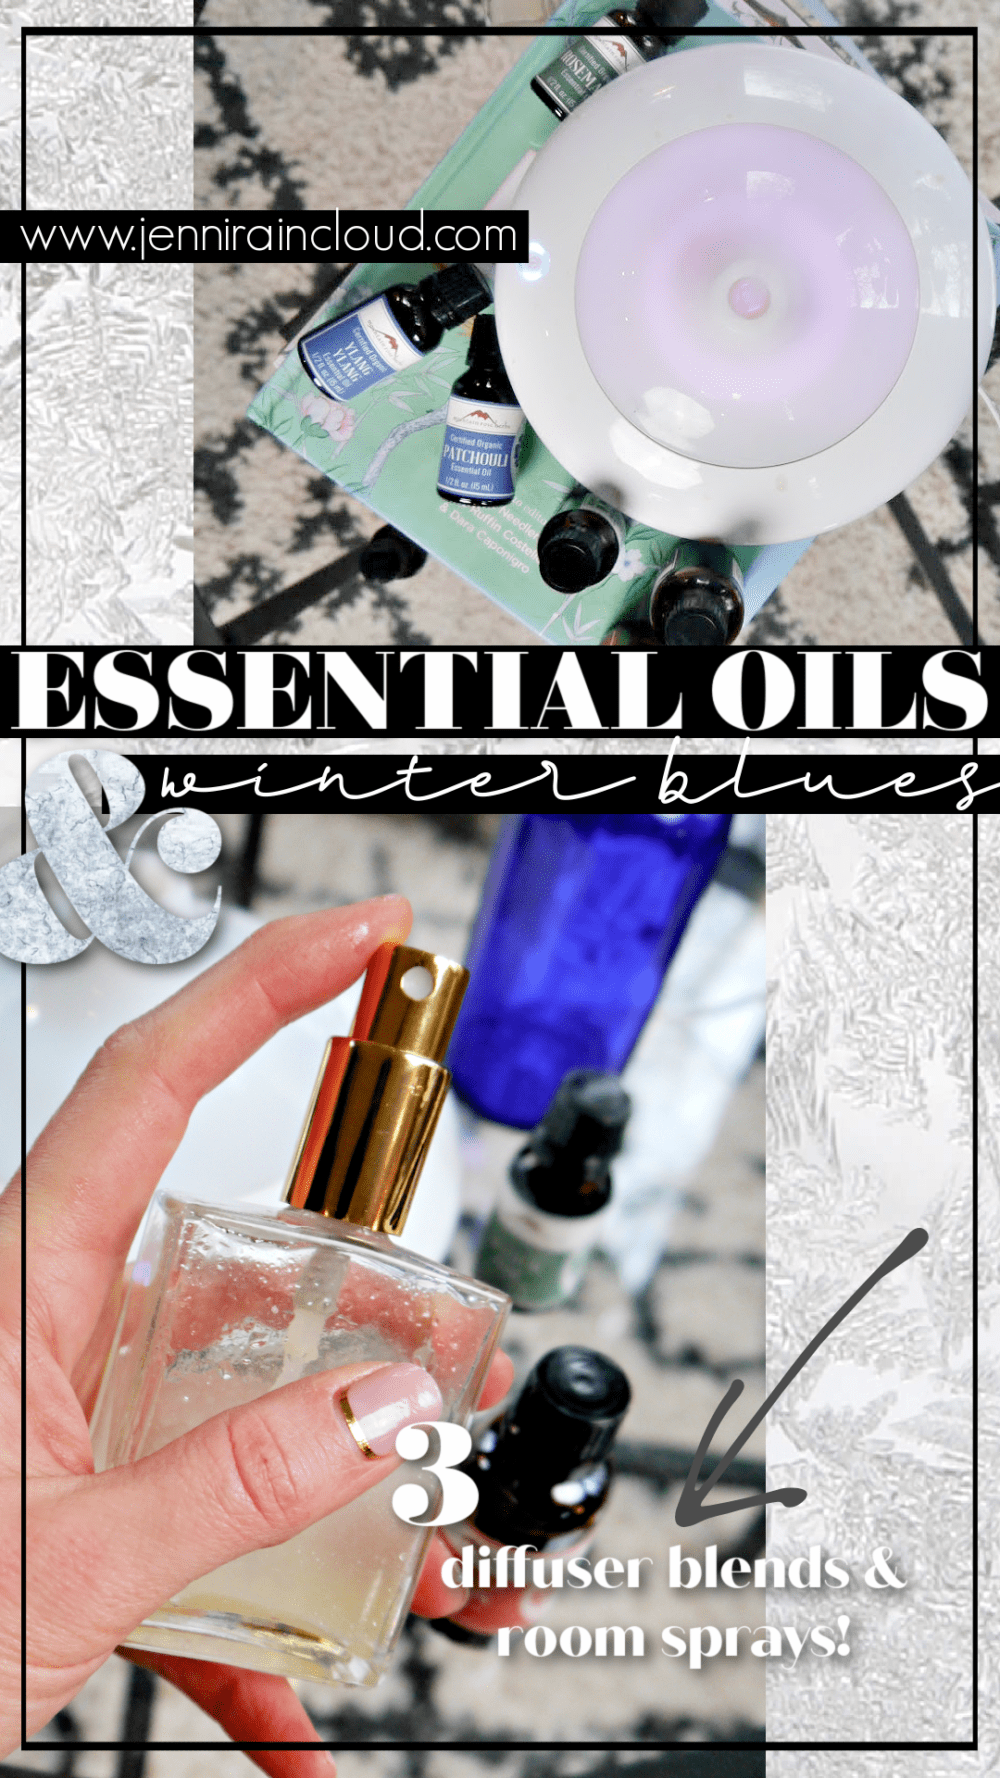 Winter Blues & Essential Oil Blends